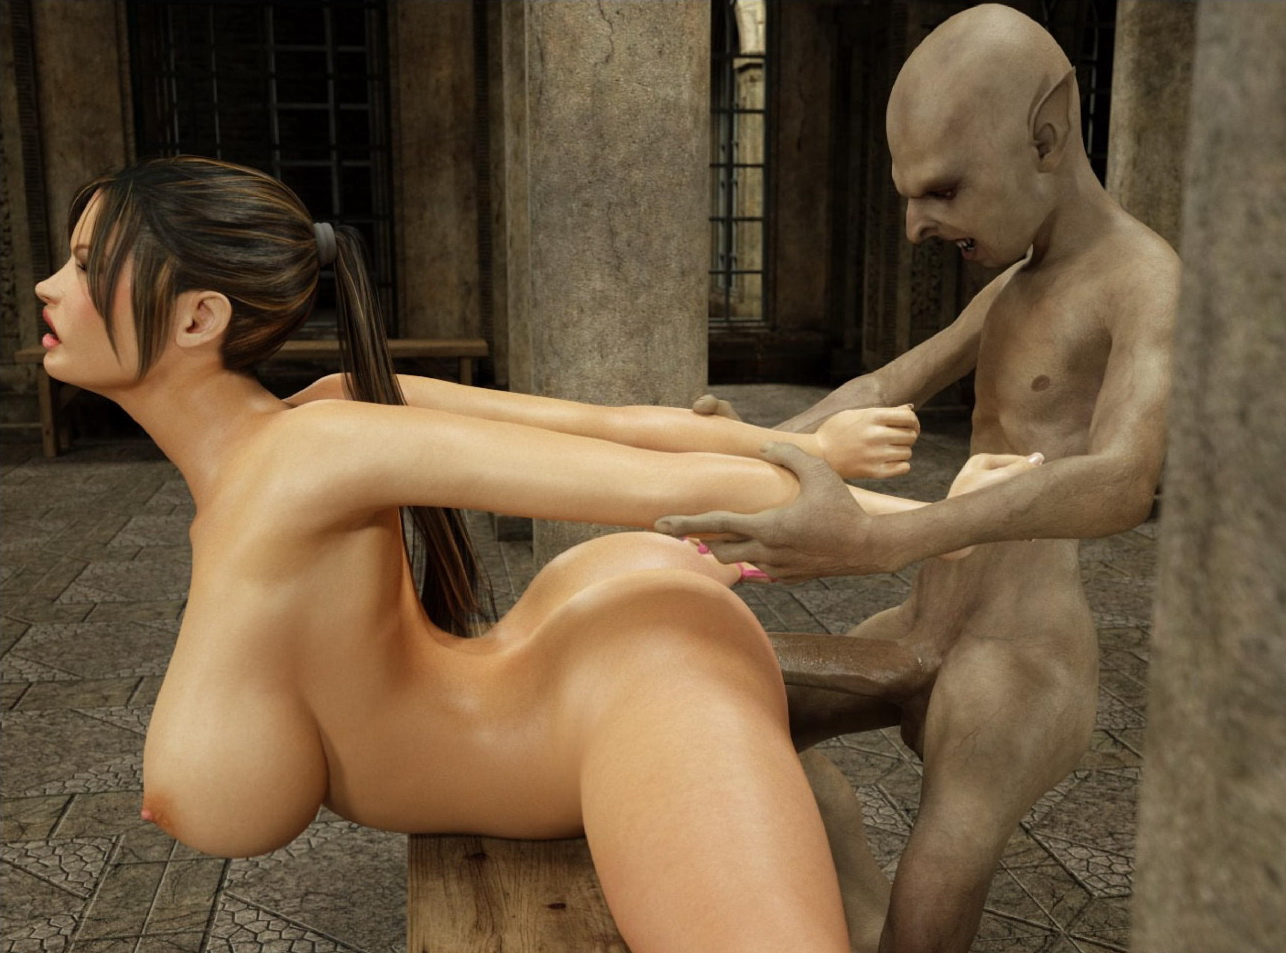 3d lara croft fucks goblin photos nude streaming